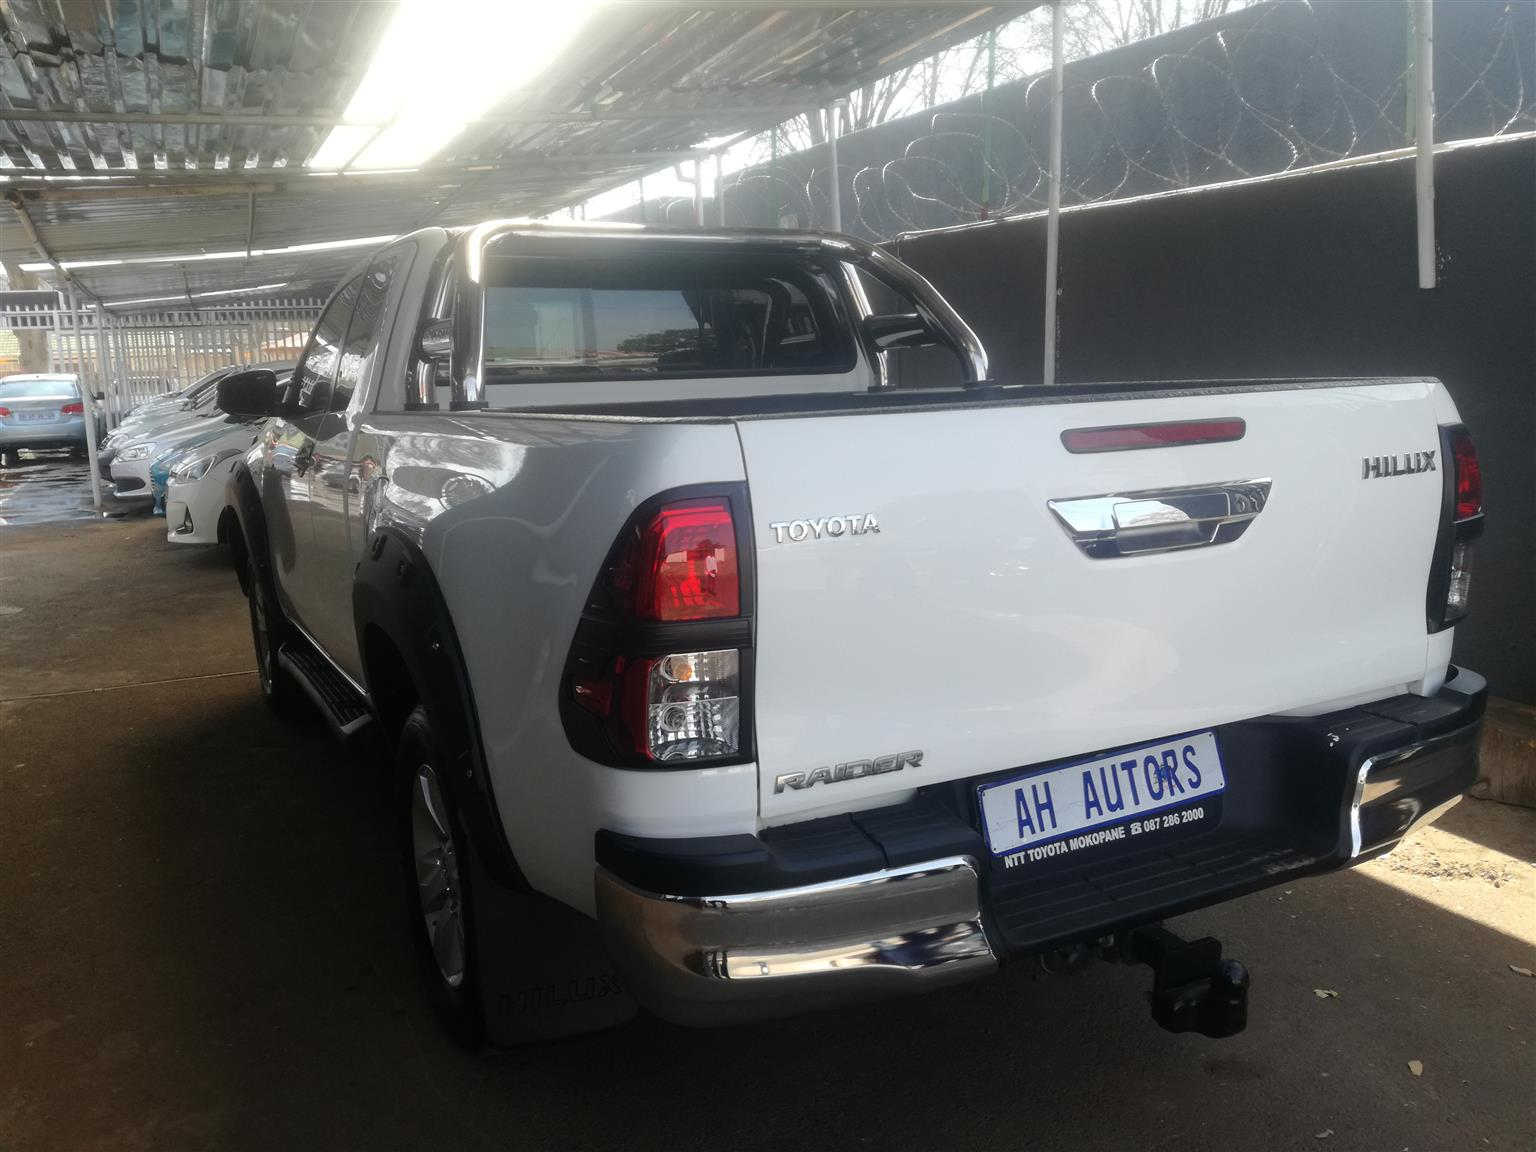 2017 Toyota Hilux Single Cab Hilux 2 8 Gd 6 Raider 4x4 P U S C Buy